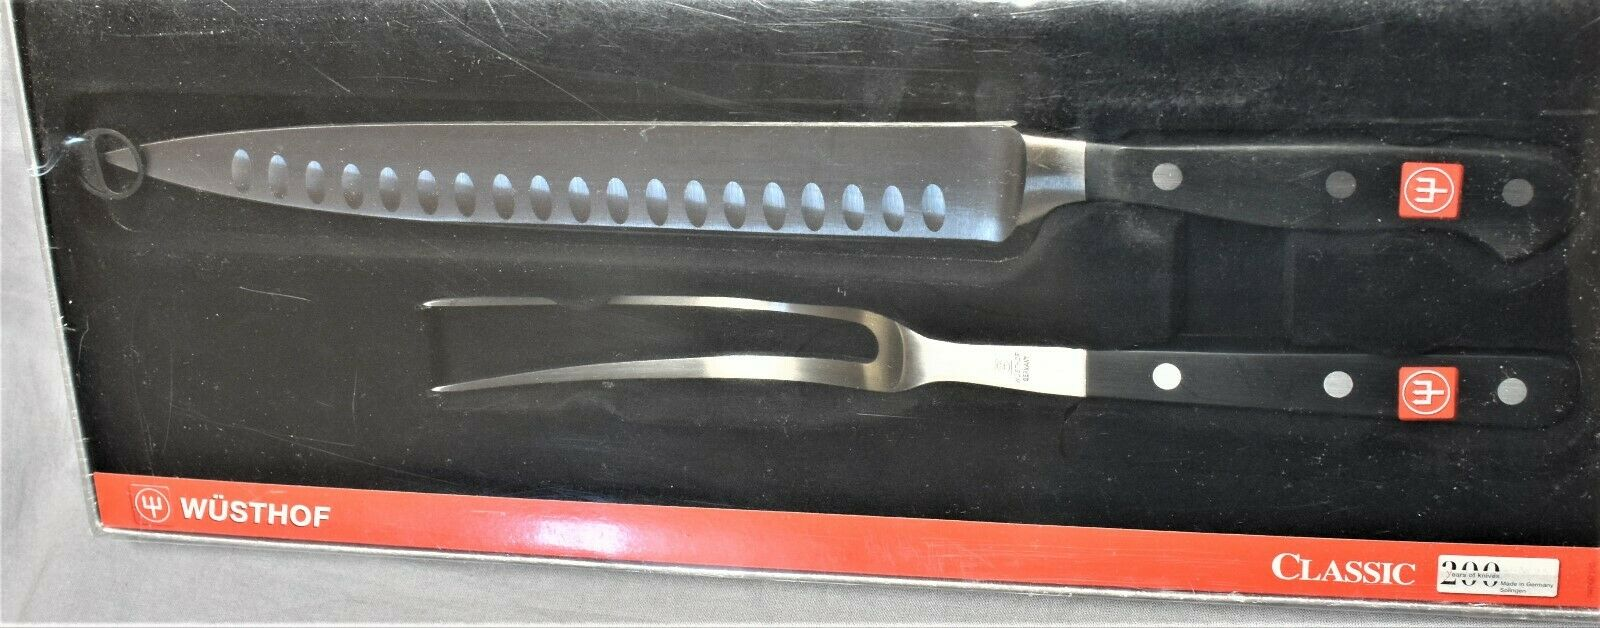 NEW Wusthof 4524     23cm Classic Carving Set 9  Hollow Ground Knife &  Fork 2 pc ee78f2